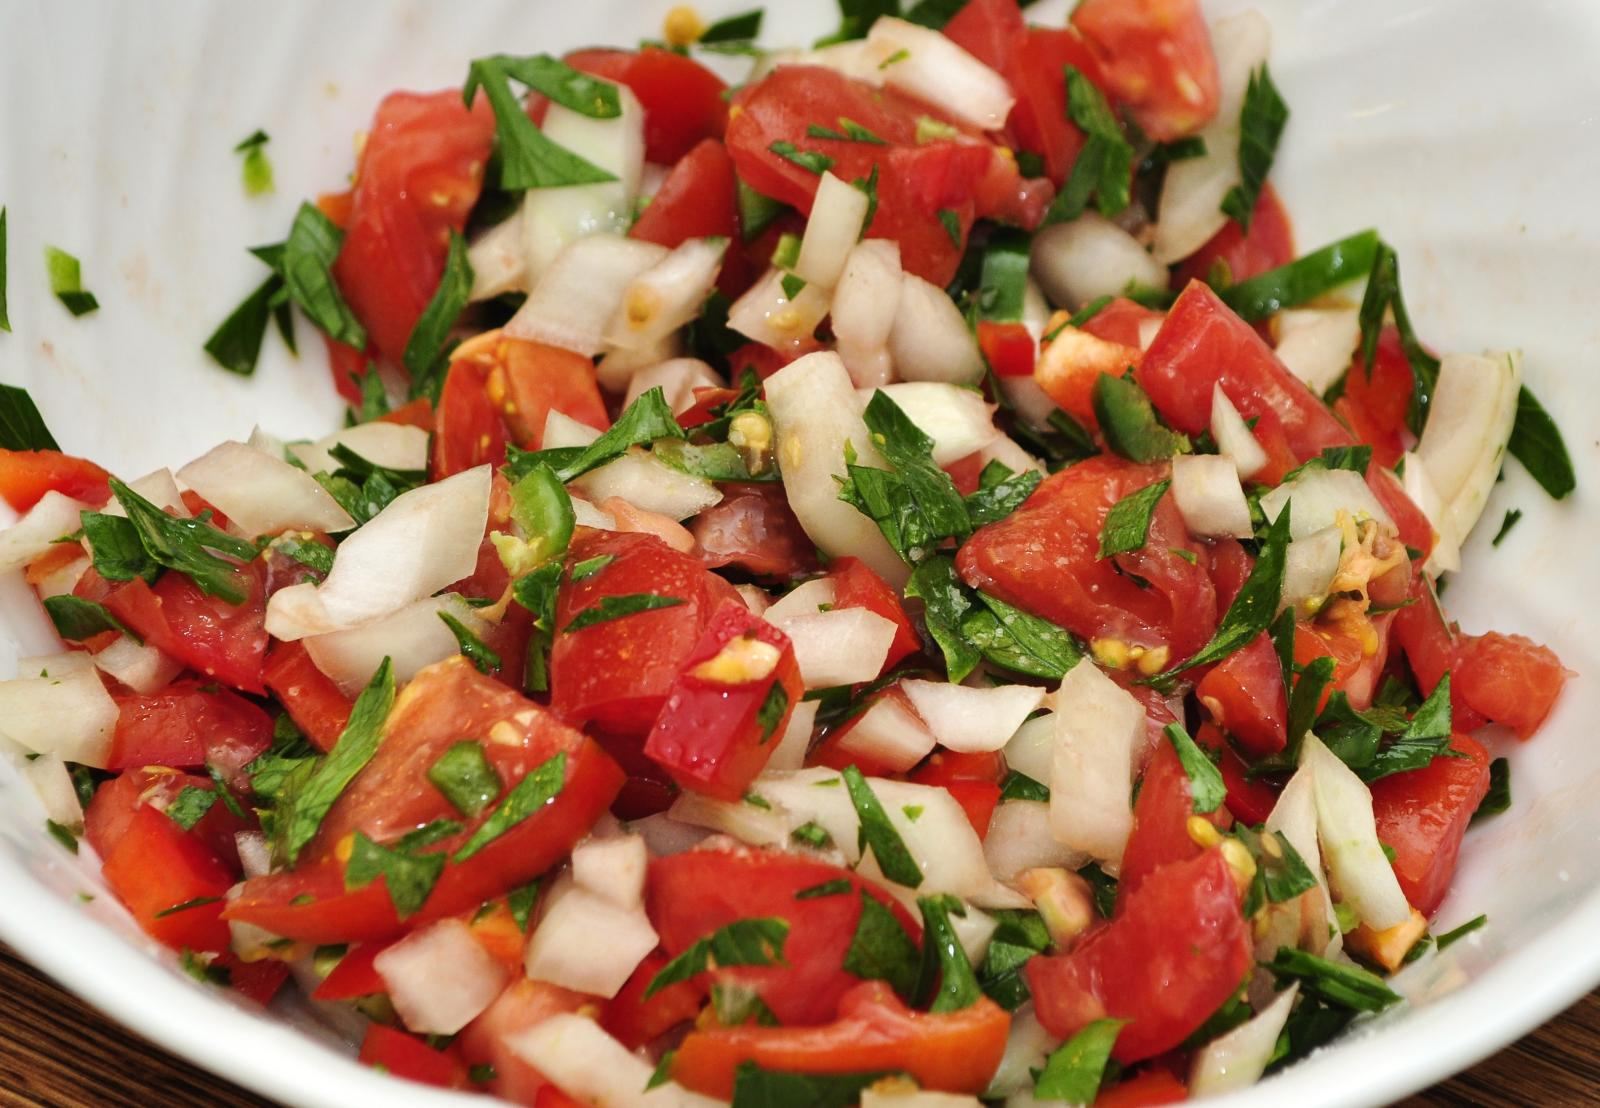 File:Mmm... Pico de Gallo (5923456035).jpg - Wikimedia Commons